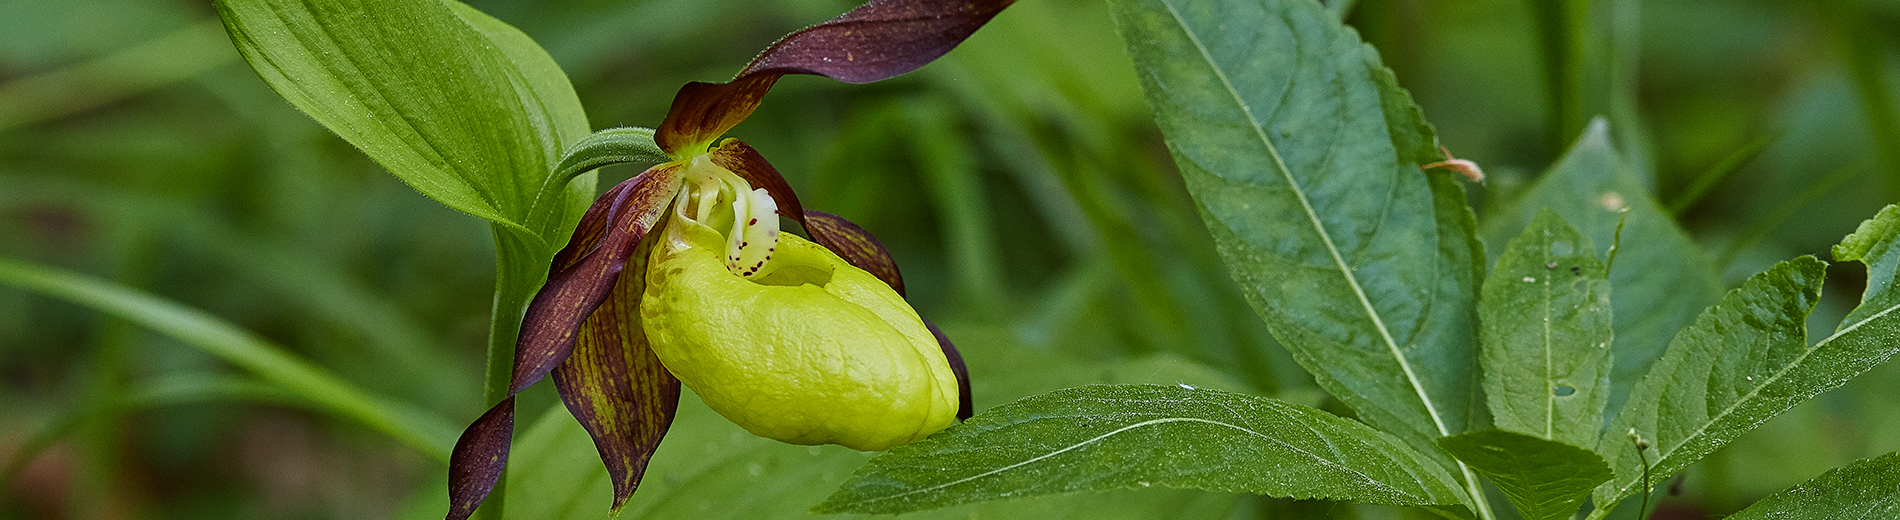 The season of lady's-slipper orchids